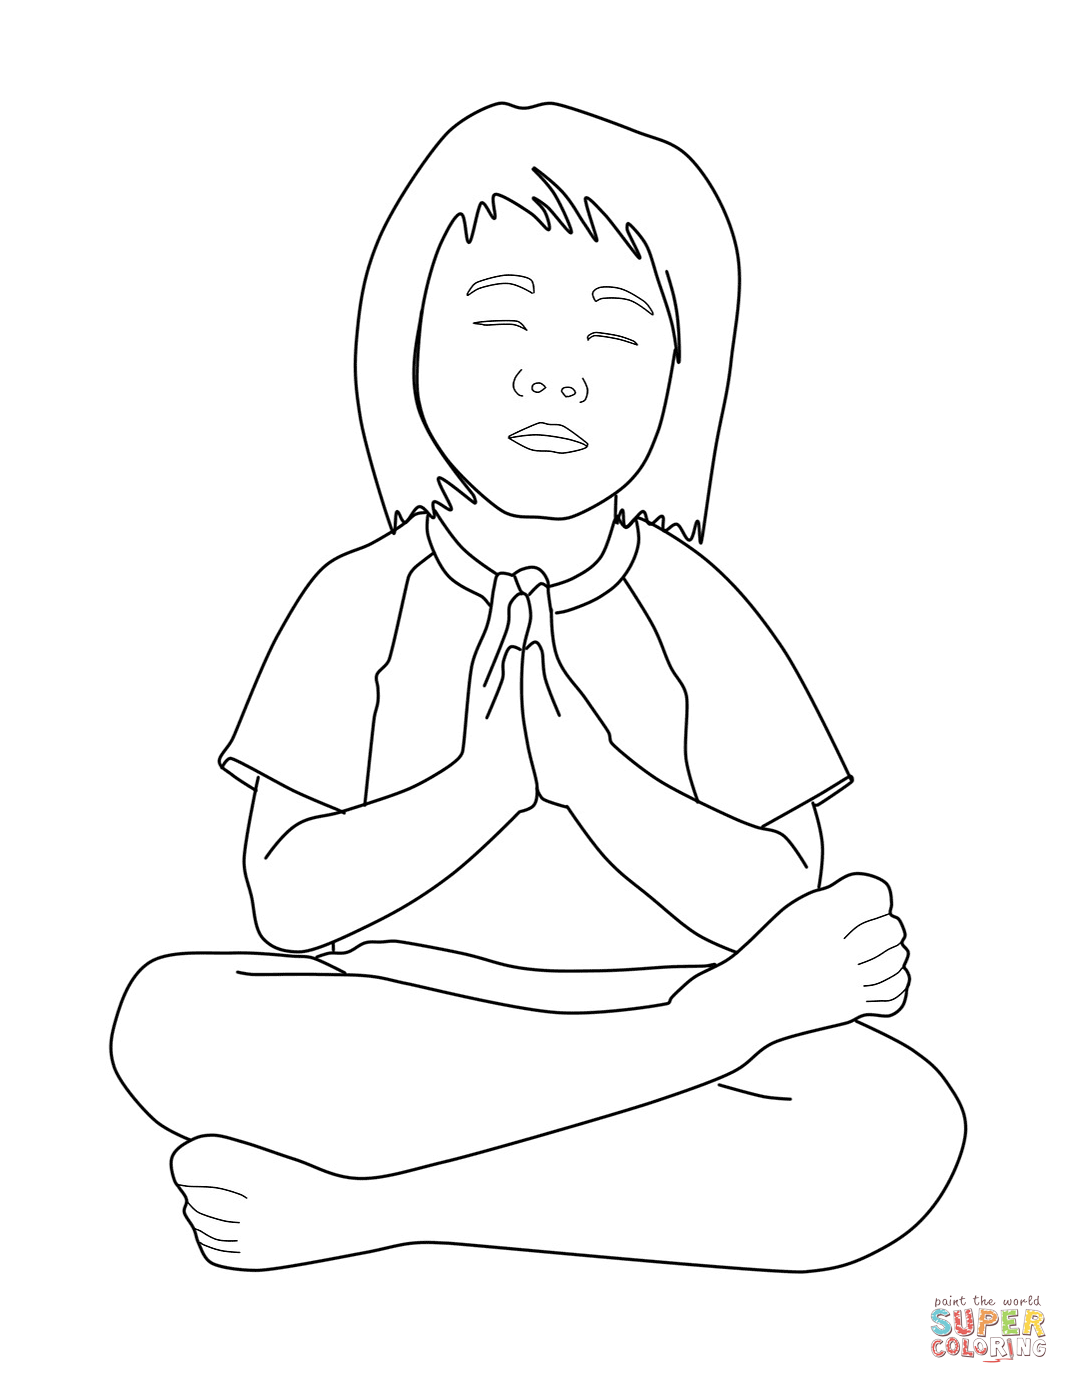 1069x1384 Praying Child Coloring Page Free Printable Coloring Pages